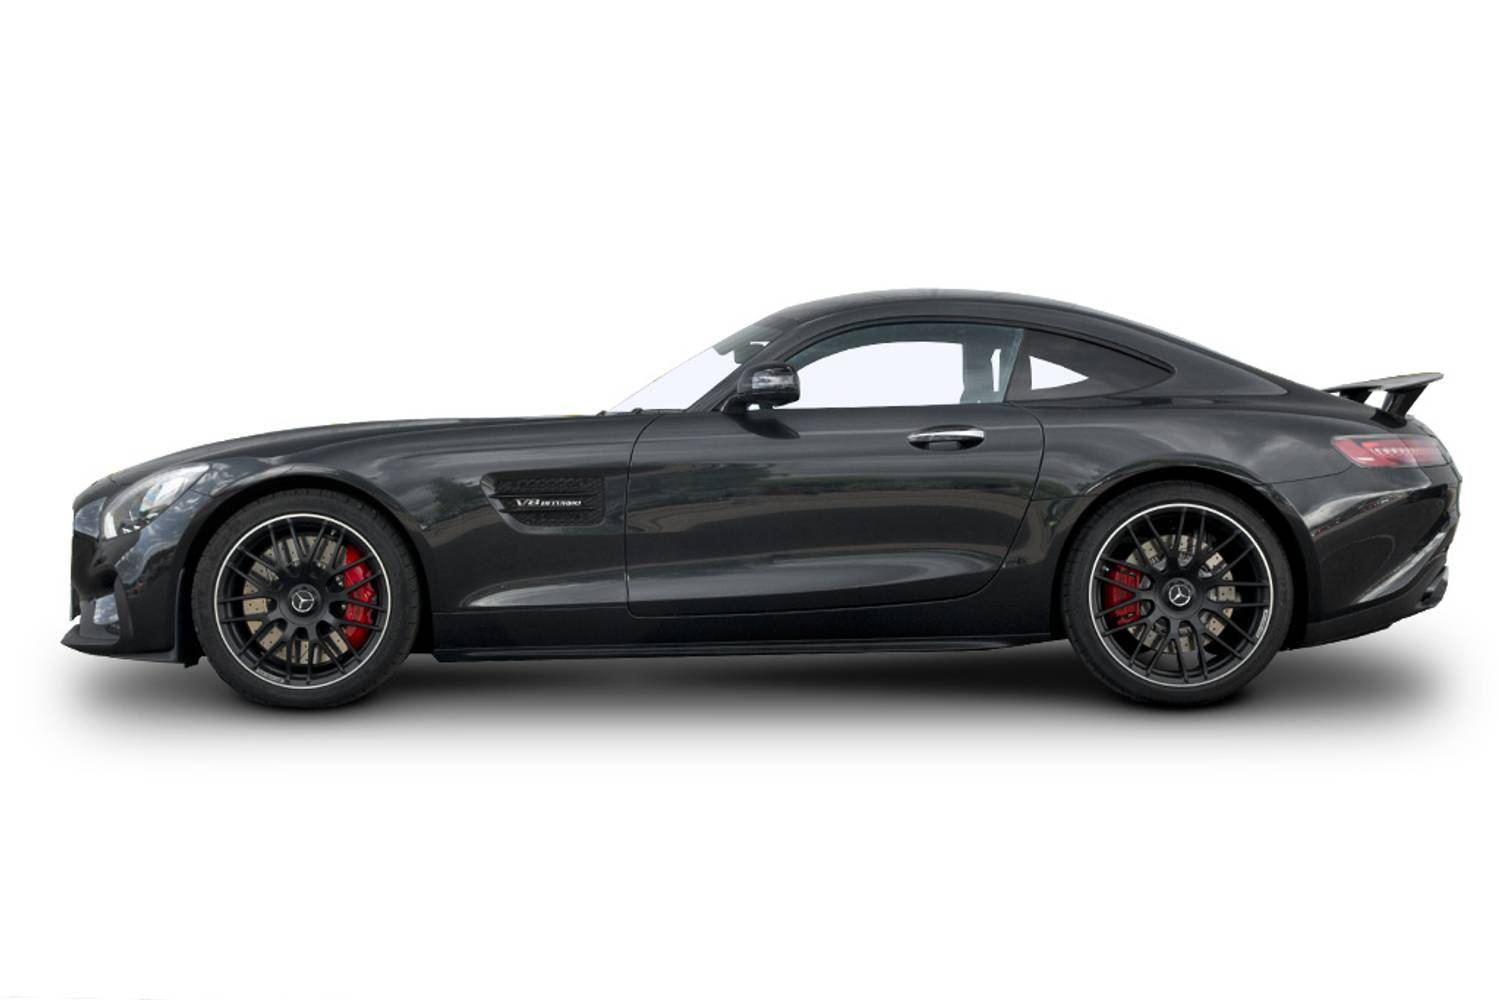 Lovely Mercedes Benz AMG GT Coupe GT 2dr Auto Profile